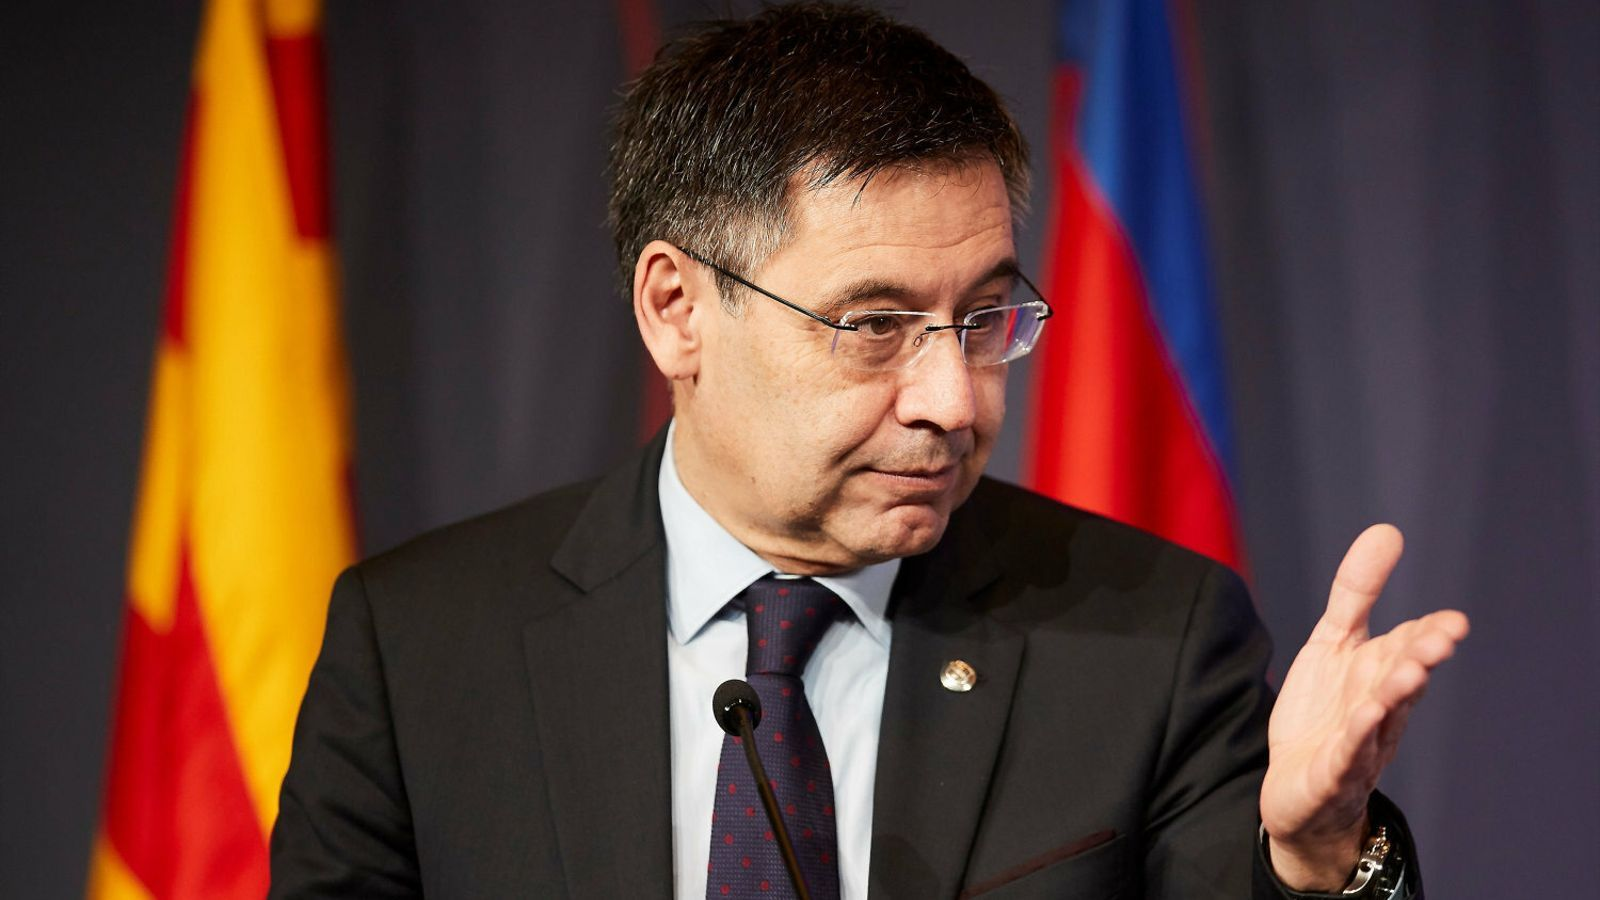 Bartomeu defensa un club assetjat